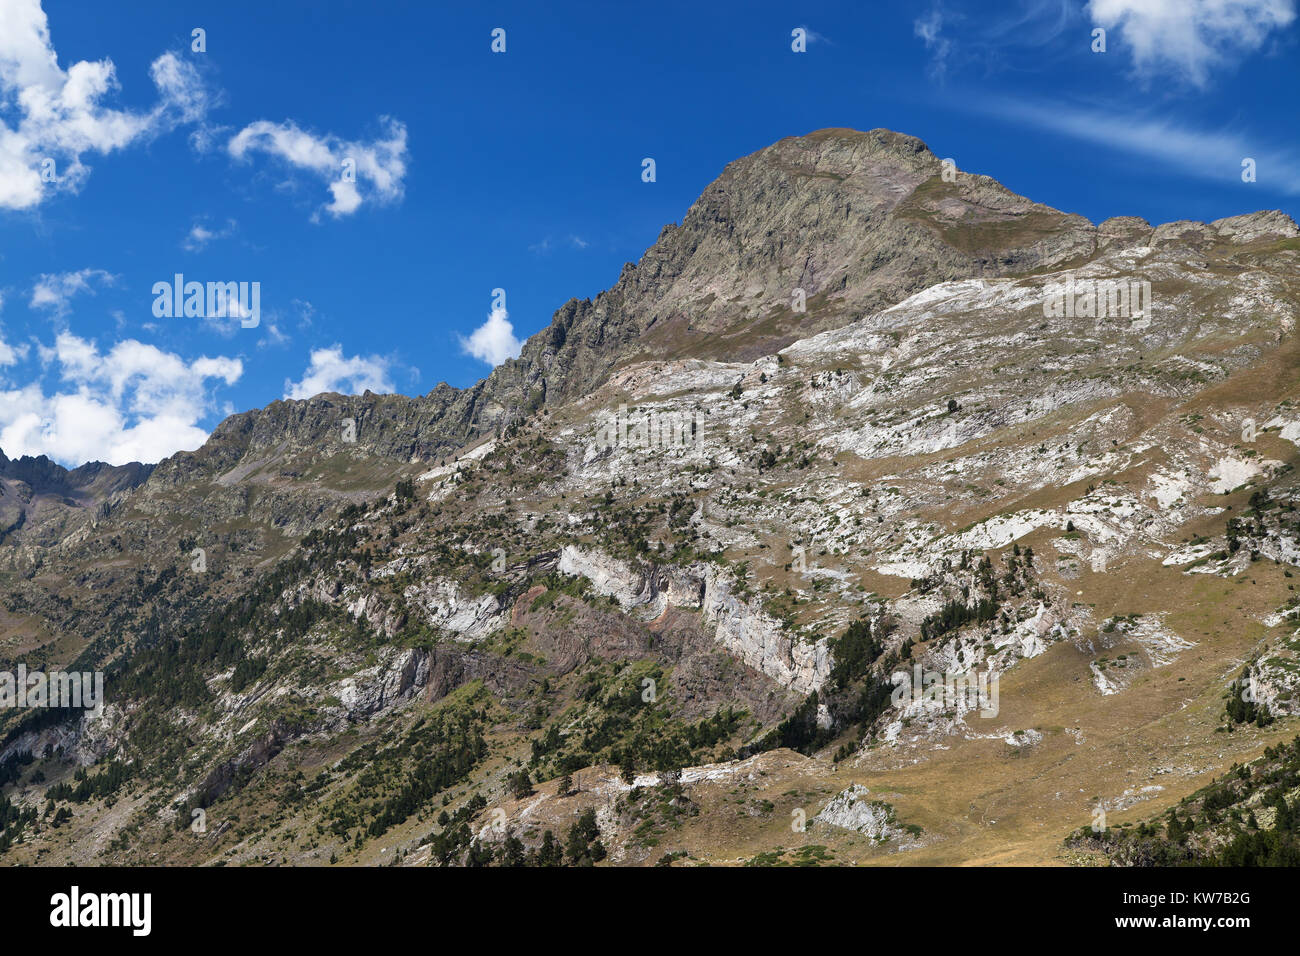 South Face of the Tuca de Salvaguardia in the Posets-Maladeta Nature Park, Pyrenees, Spain. - Stock Image